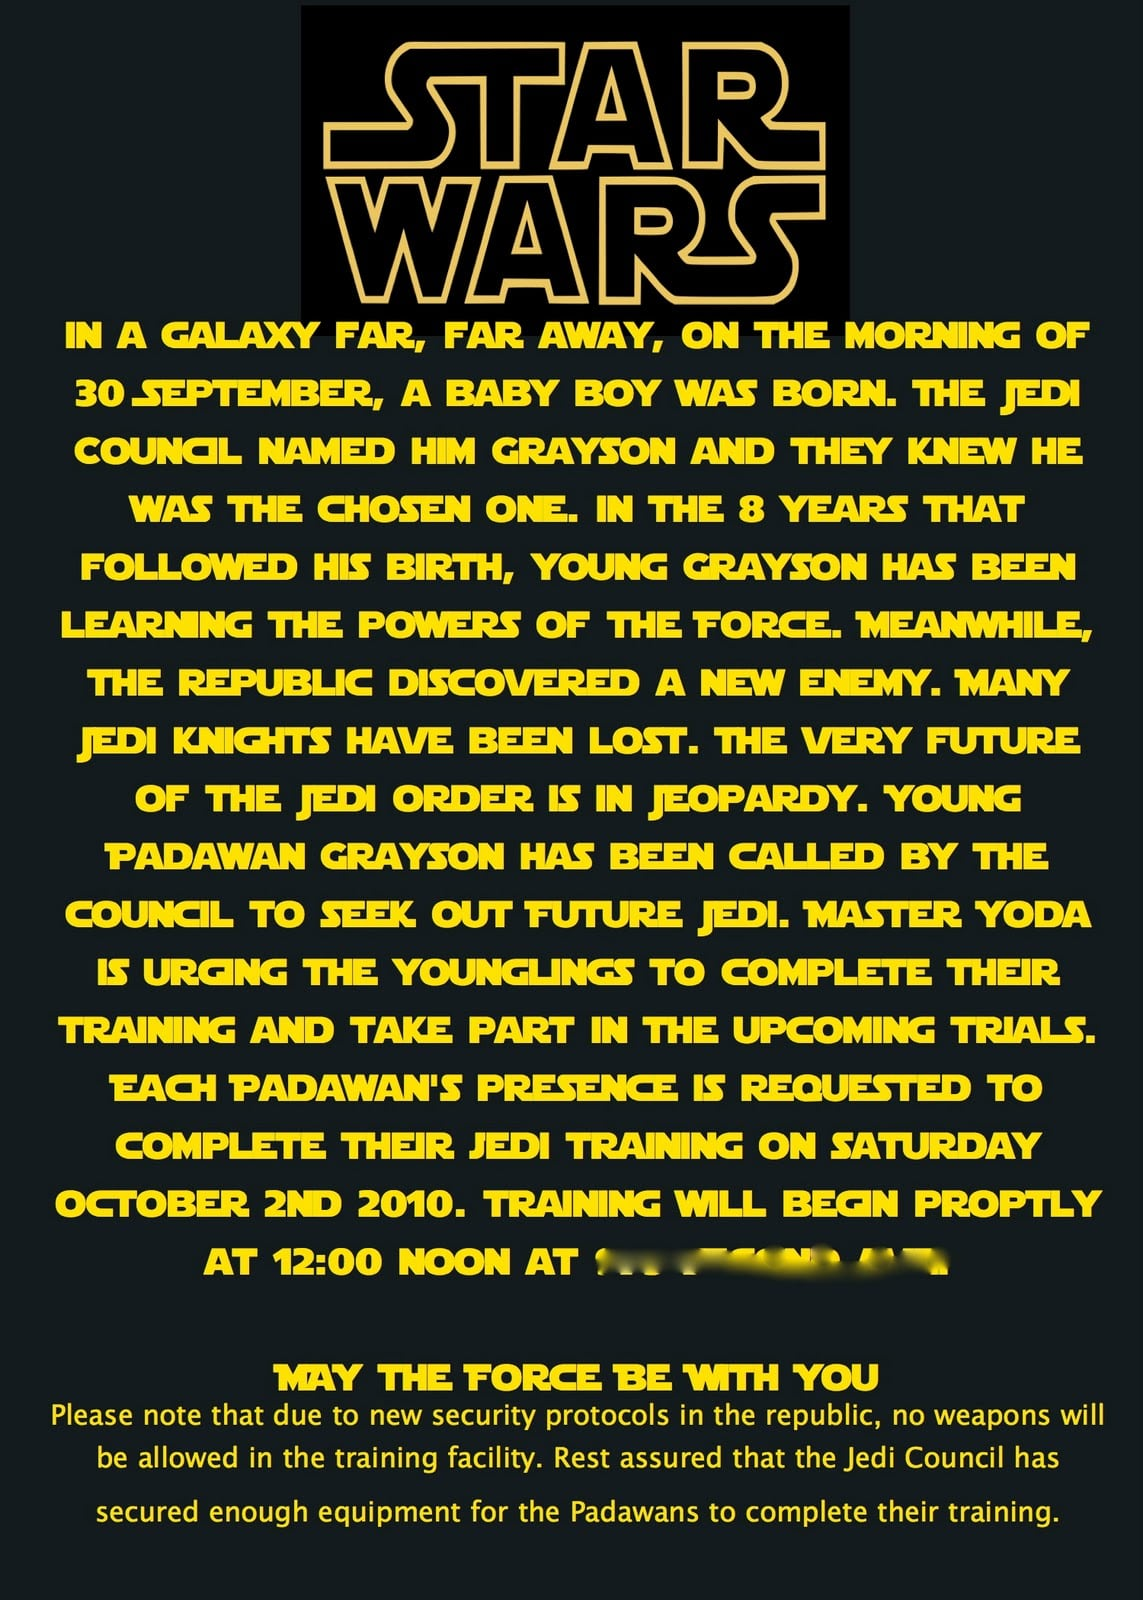 Lego Star Wars Invitation Wording